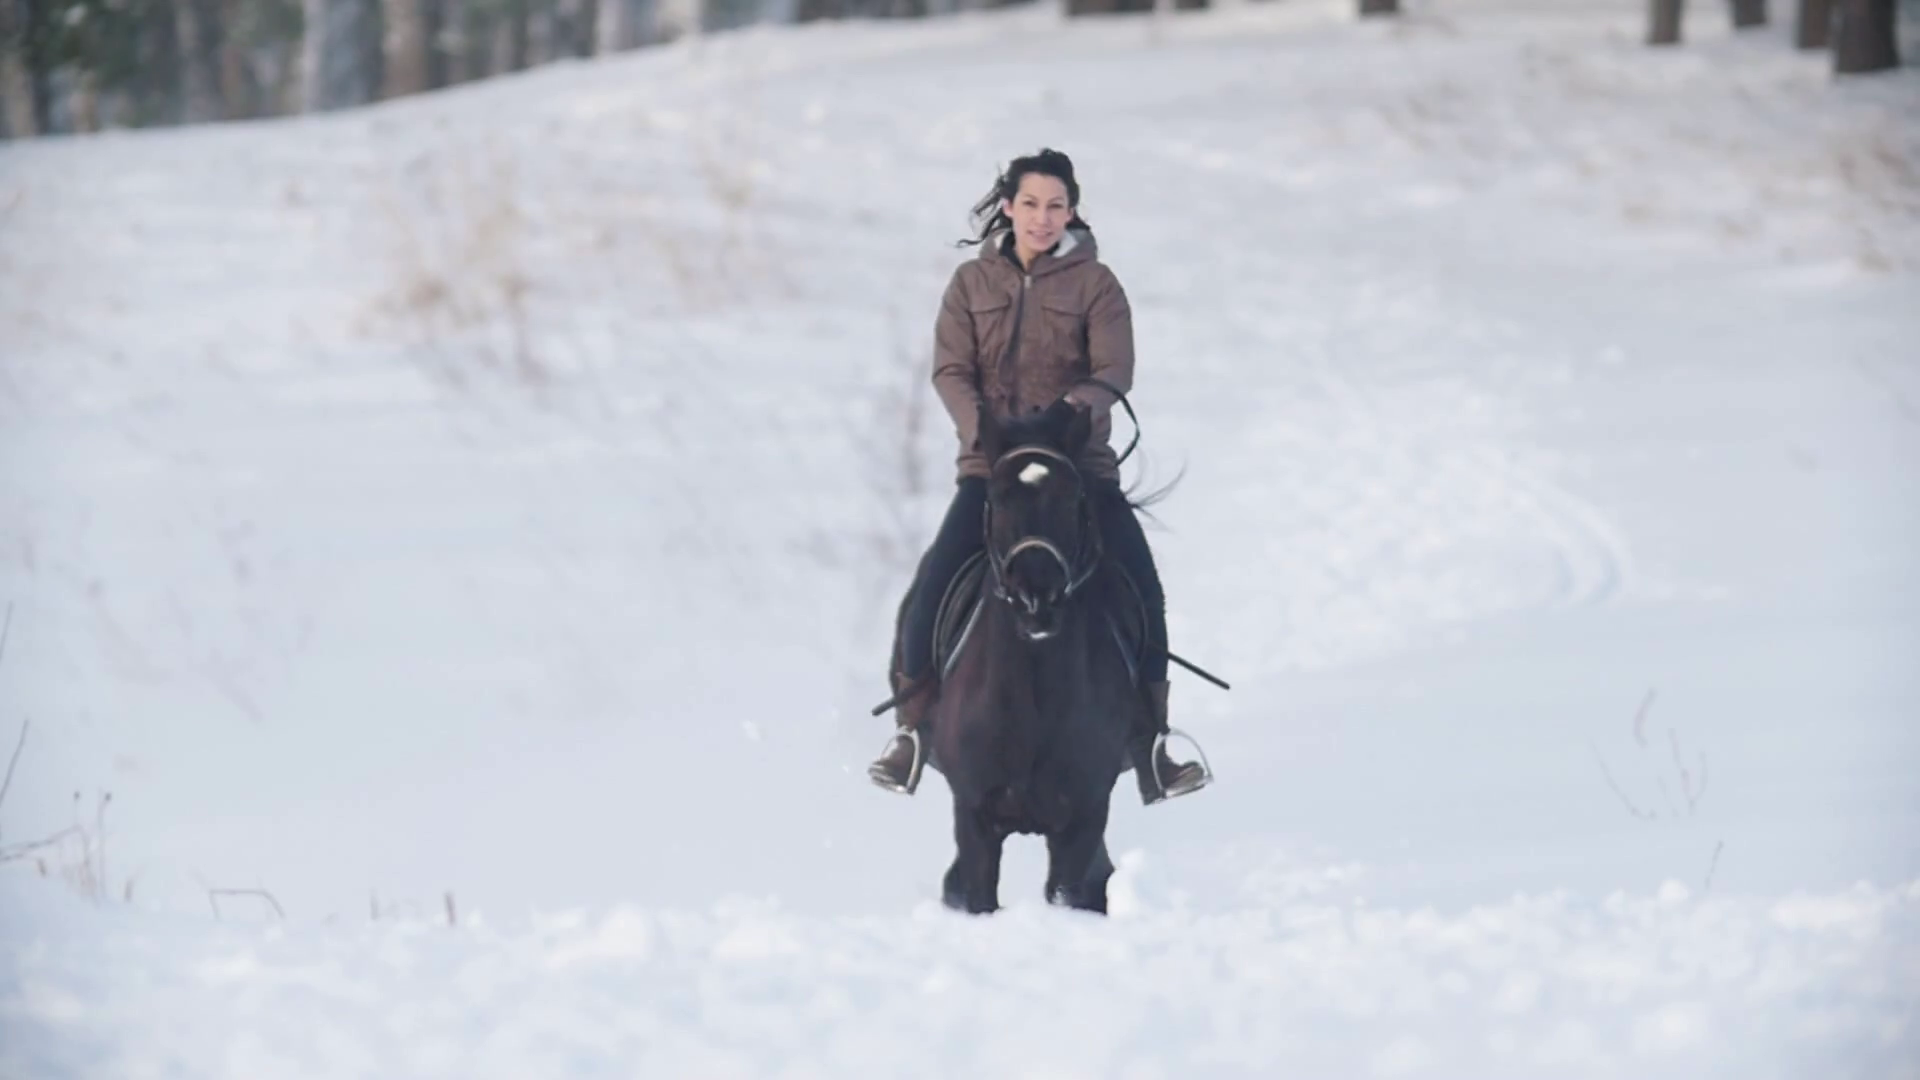 Beautiful Longhaired Female Rider Wild And Fast Riding Black Horse Through The Snow Dog Running Nearby Slow Motion Stock Video Footage Storyblocks